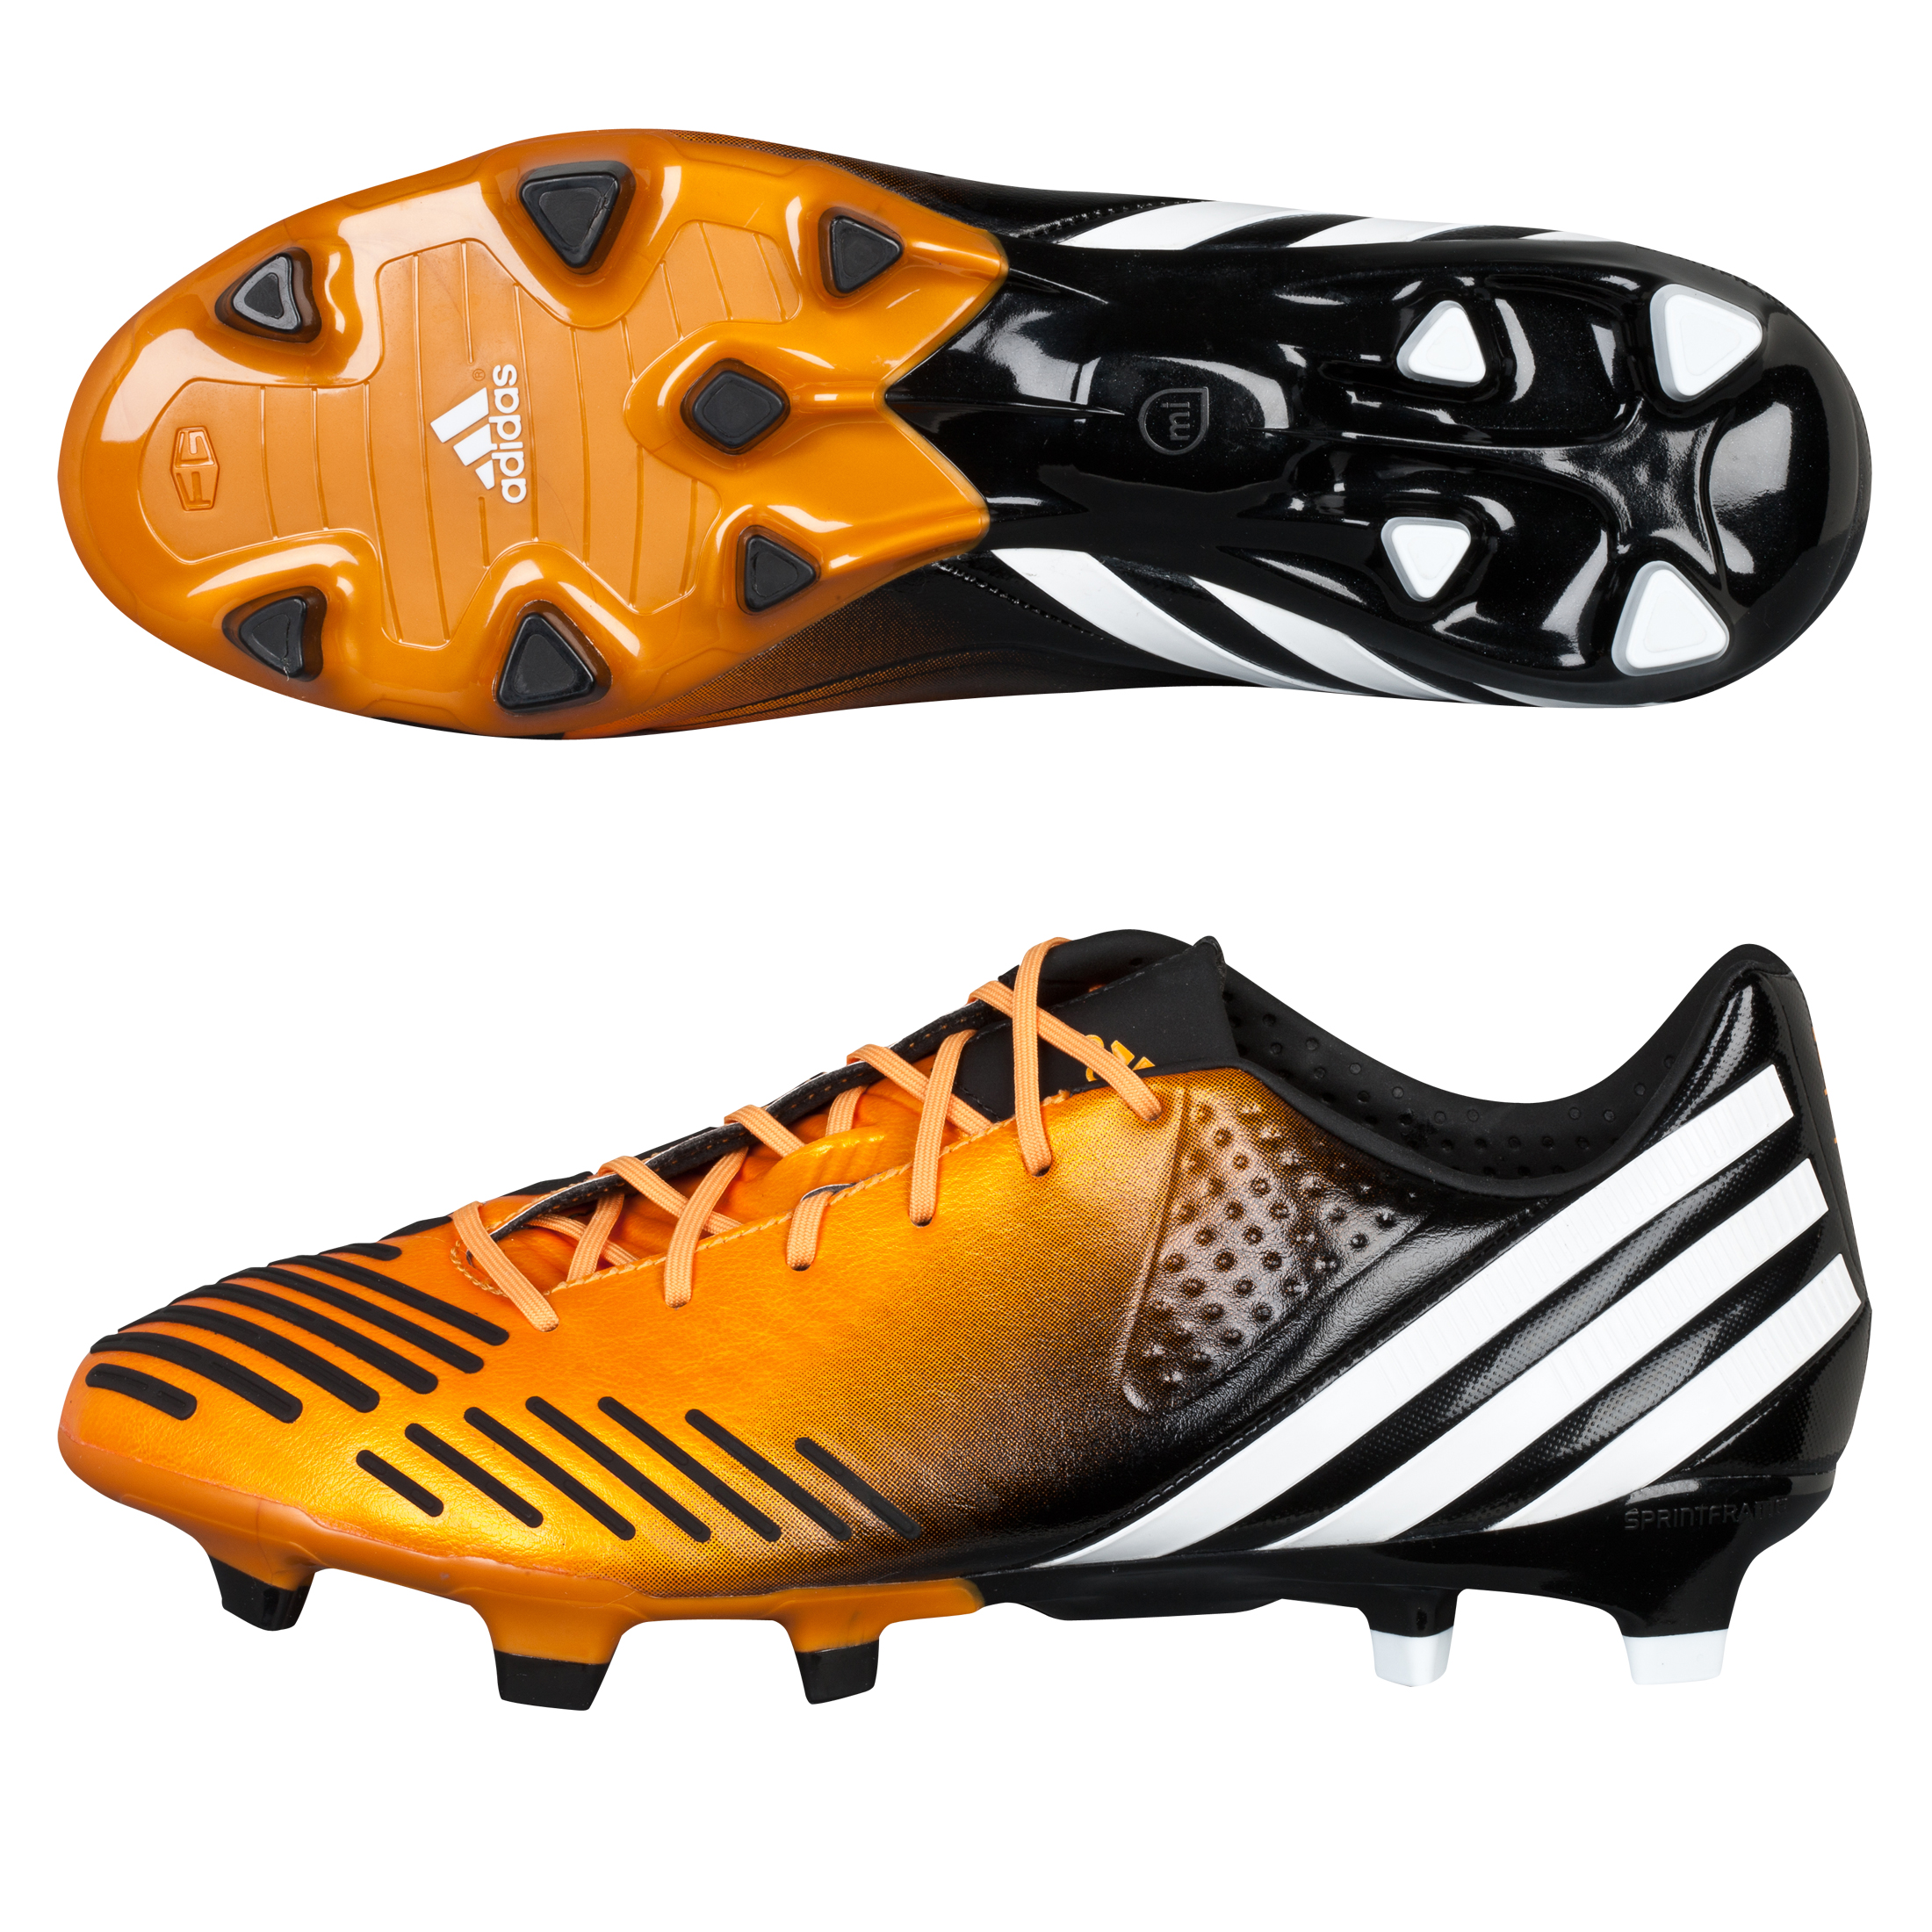 Adidas Predator LZ TRX Firm Ground Football Boots - Bright Gold/Running White/Black